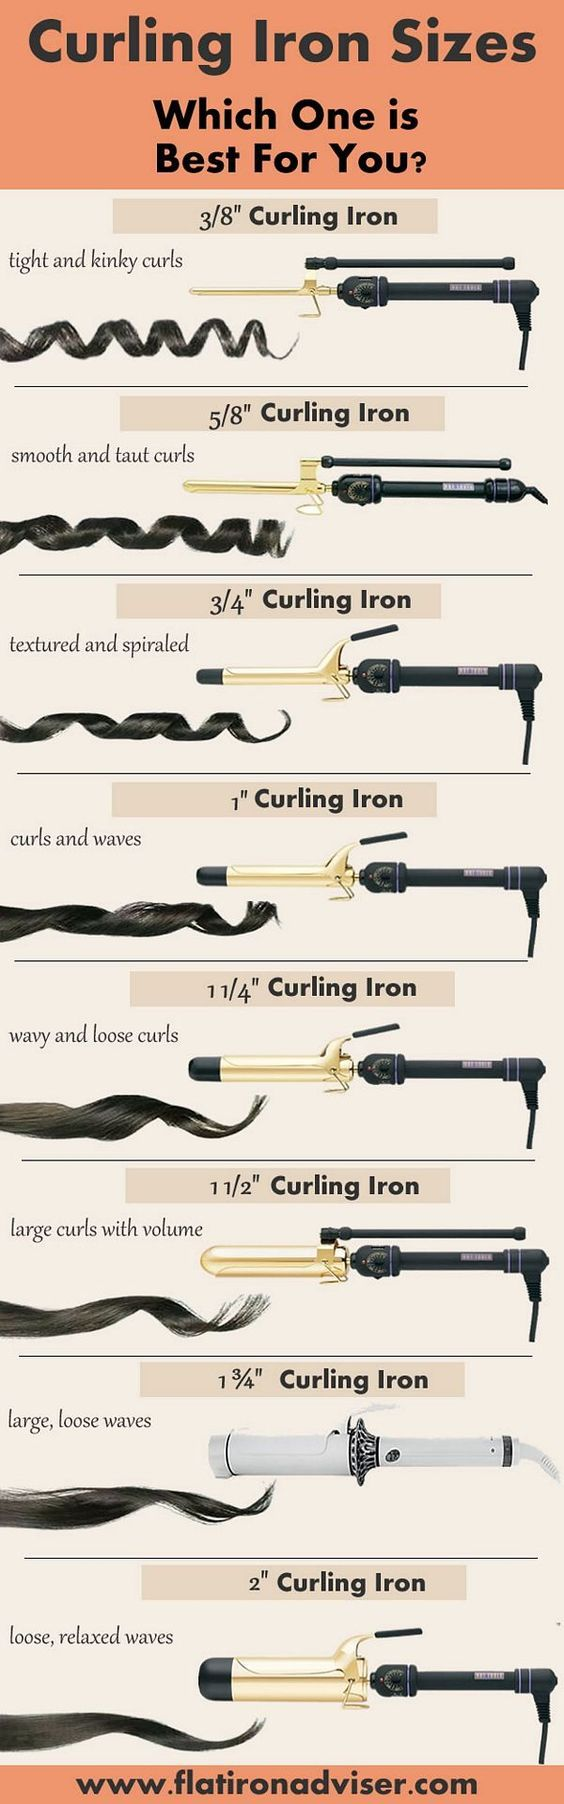 You have come to the right place. I will guide you through the best curling wands for 2017.